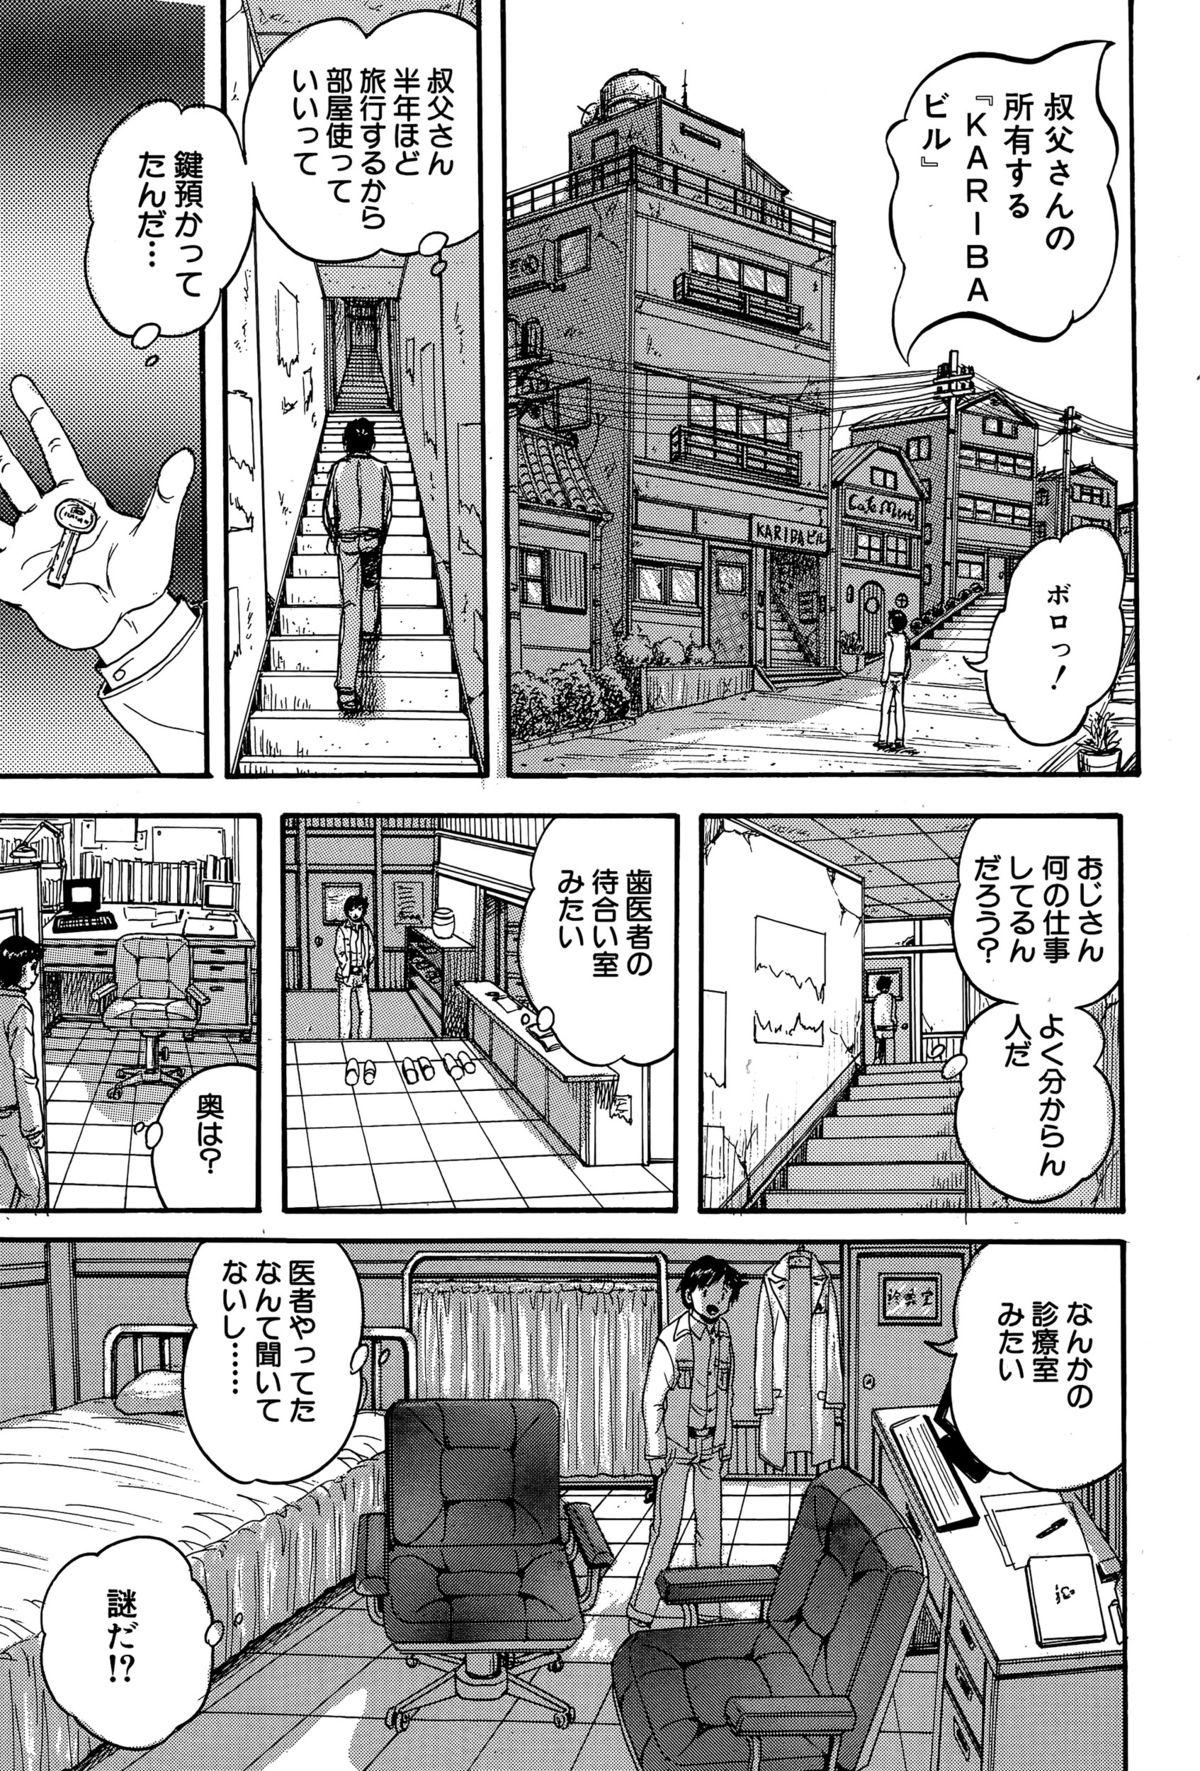 BUSTER COMIC 2015-07 324